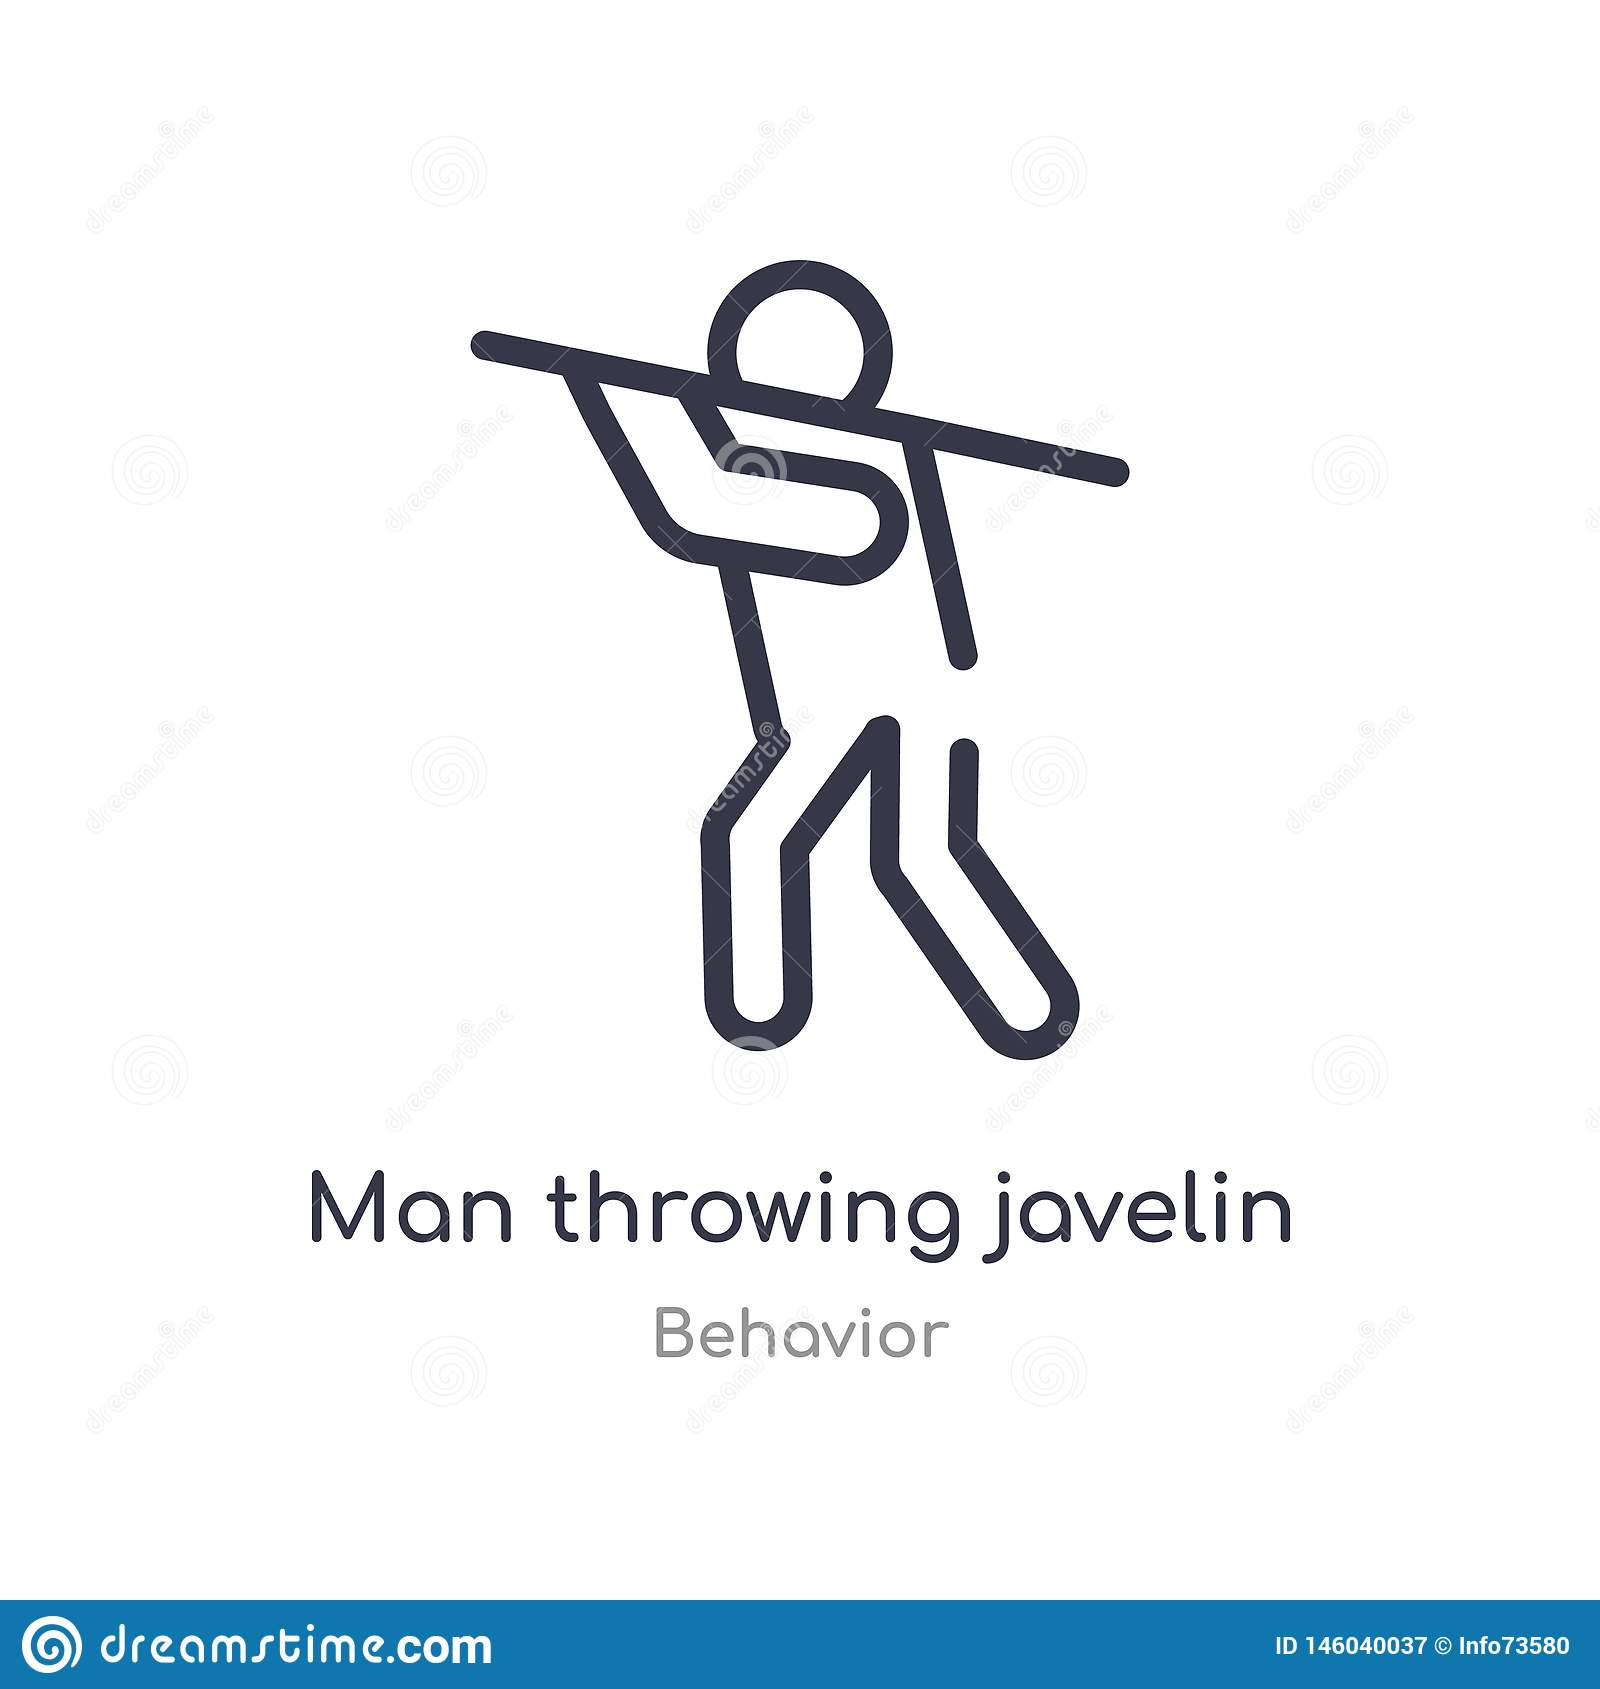 man throwing javelin outline icon. isolated line vector illustration from behavior collection. editable thin stroke man throwing